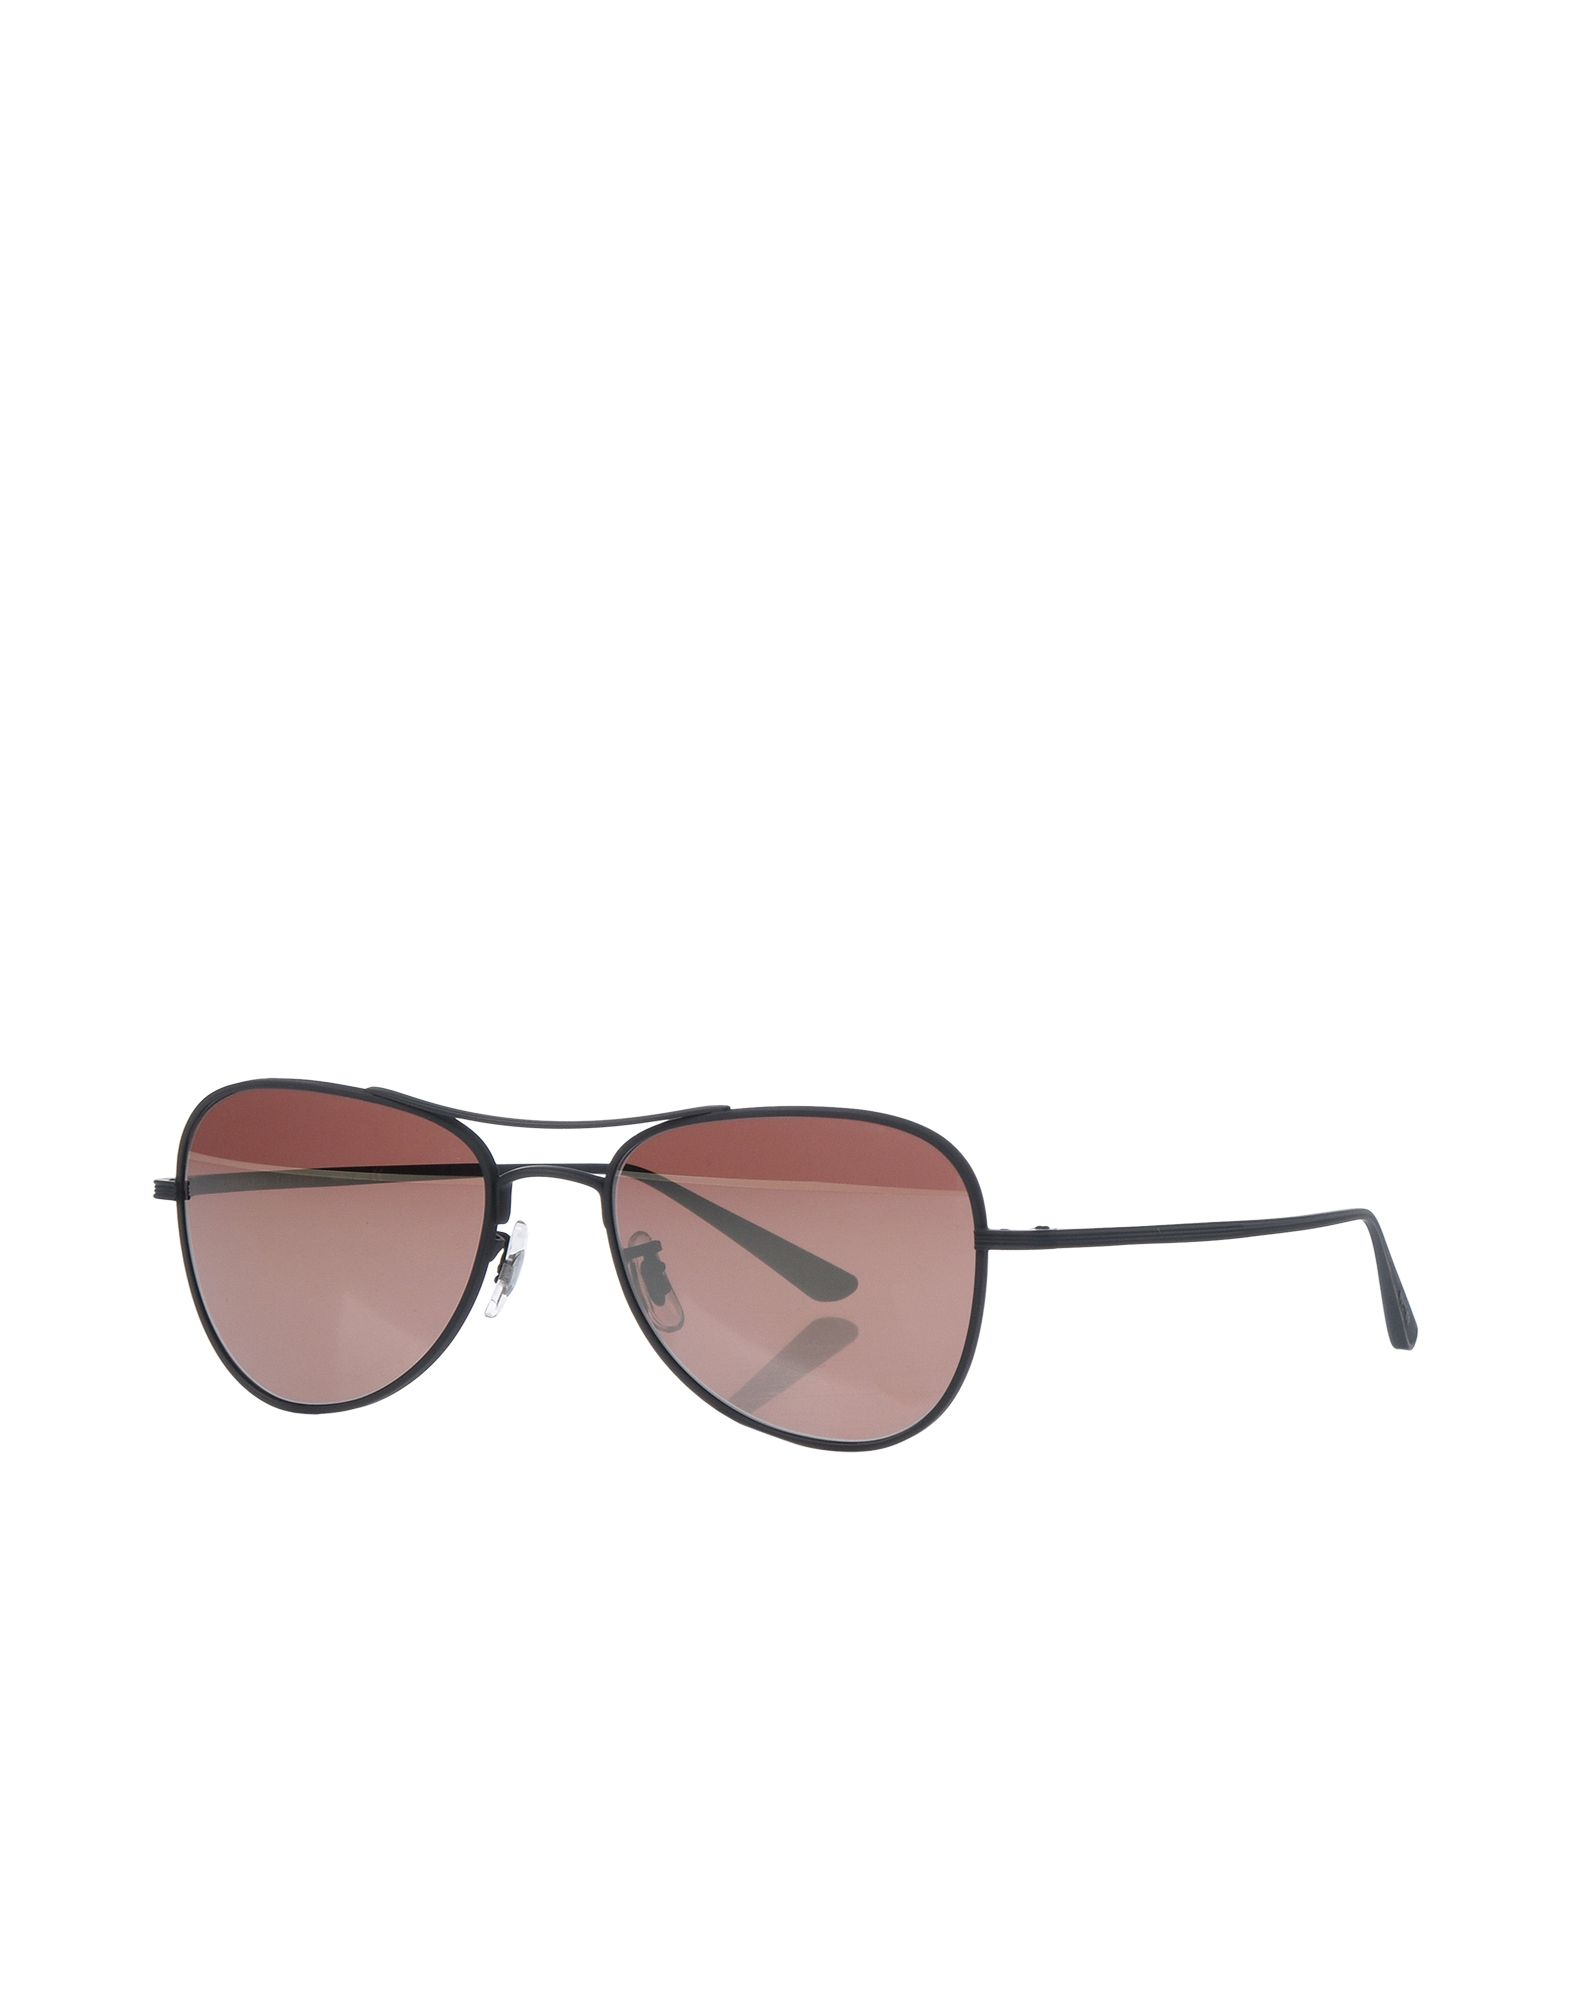 OLIVER PEOPLES THE ROW Sunglasses - Item 46672367